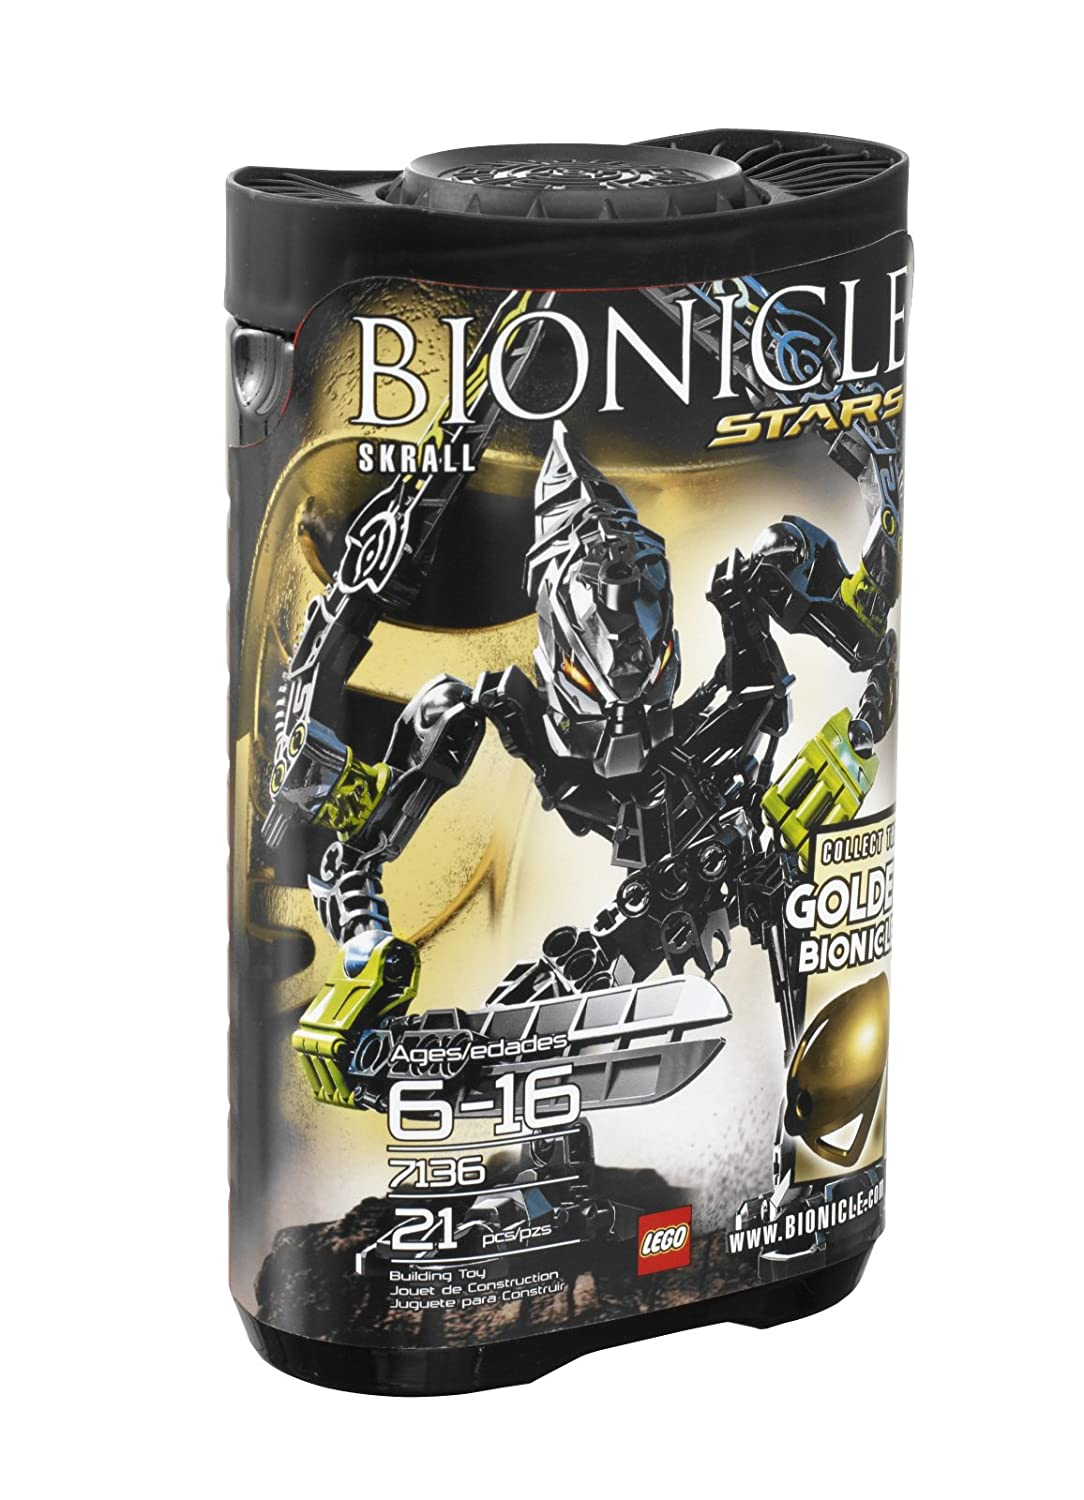 Top 15 Best Lego BIONICLE Sets Reviews in 2020 11